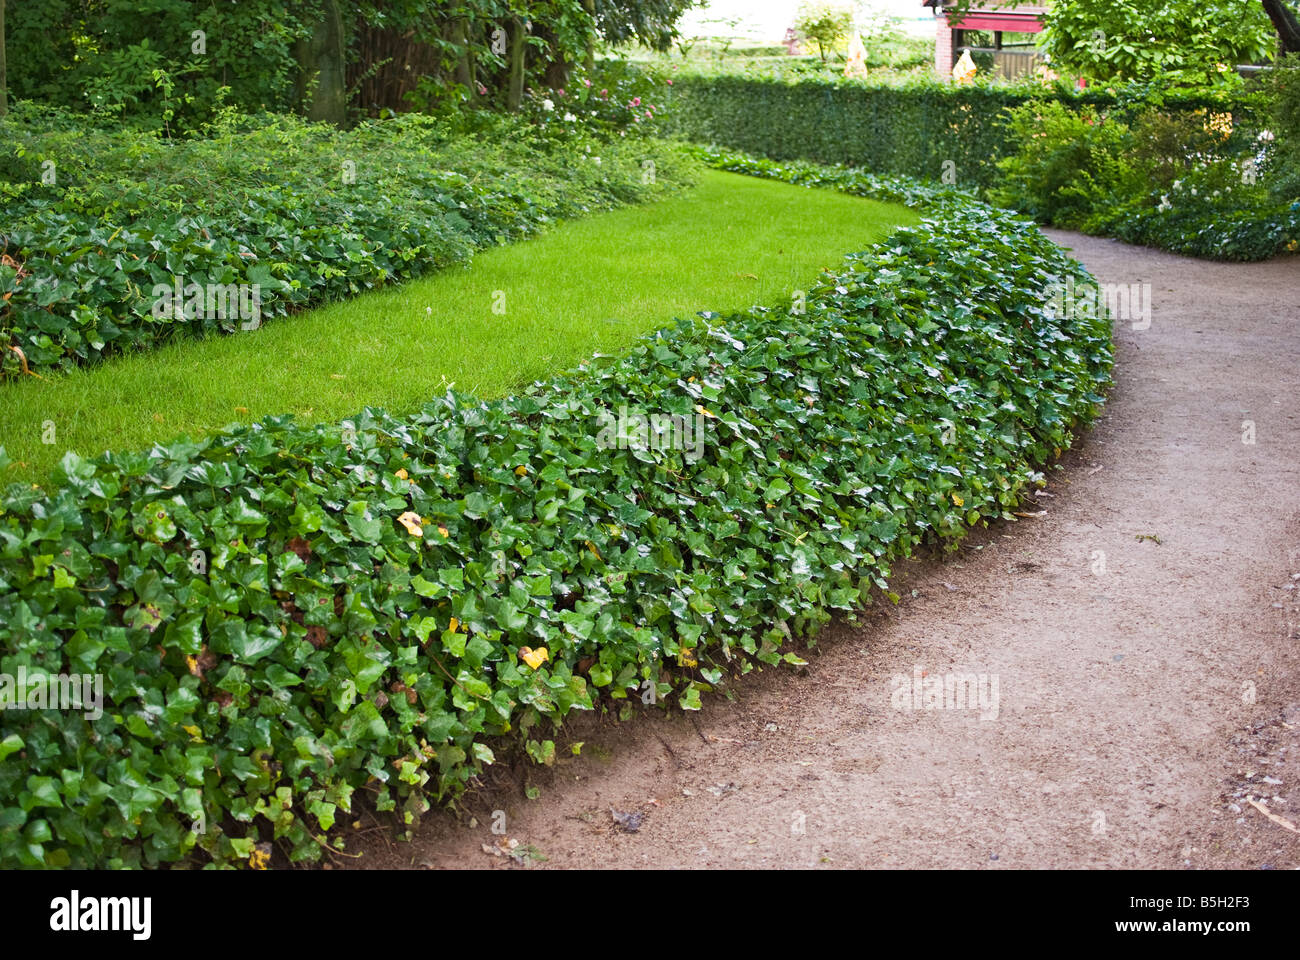 Landscaping Edging Plants : Photo effective use of ground cover plants as lawn edging in france